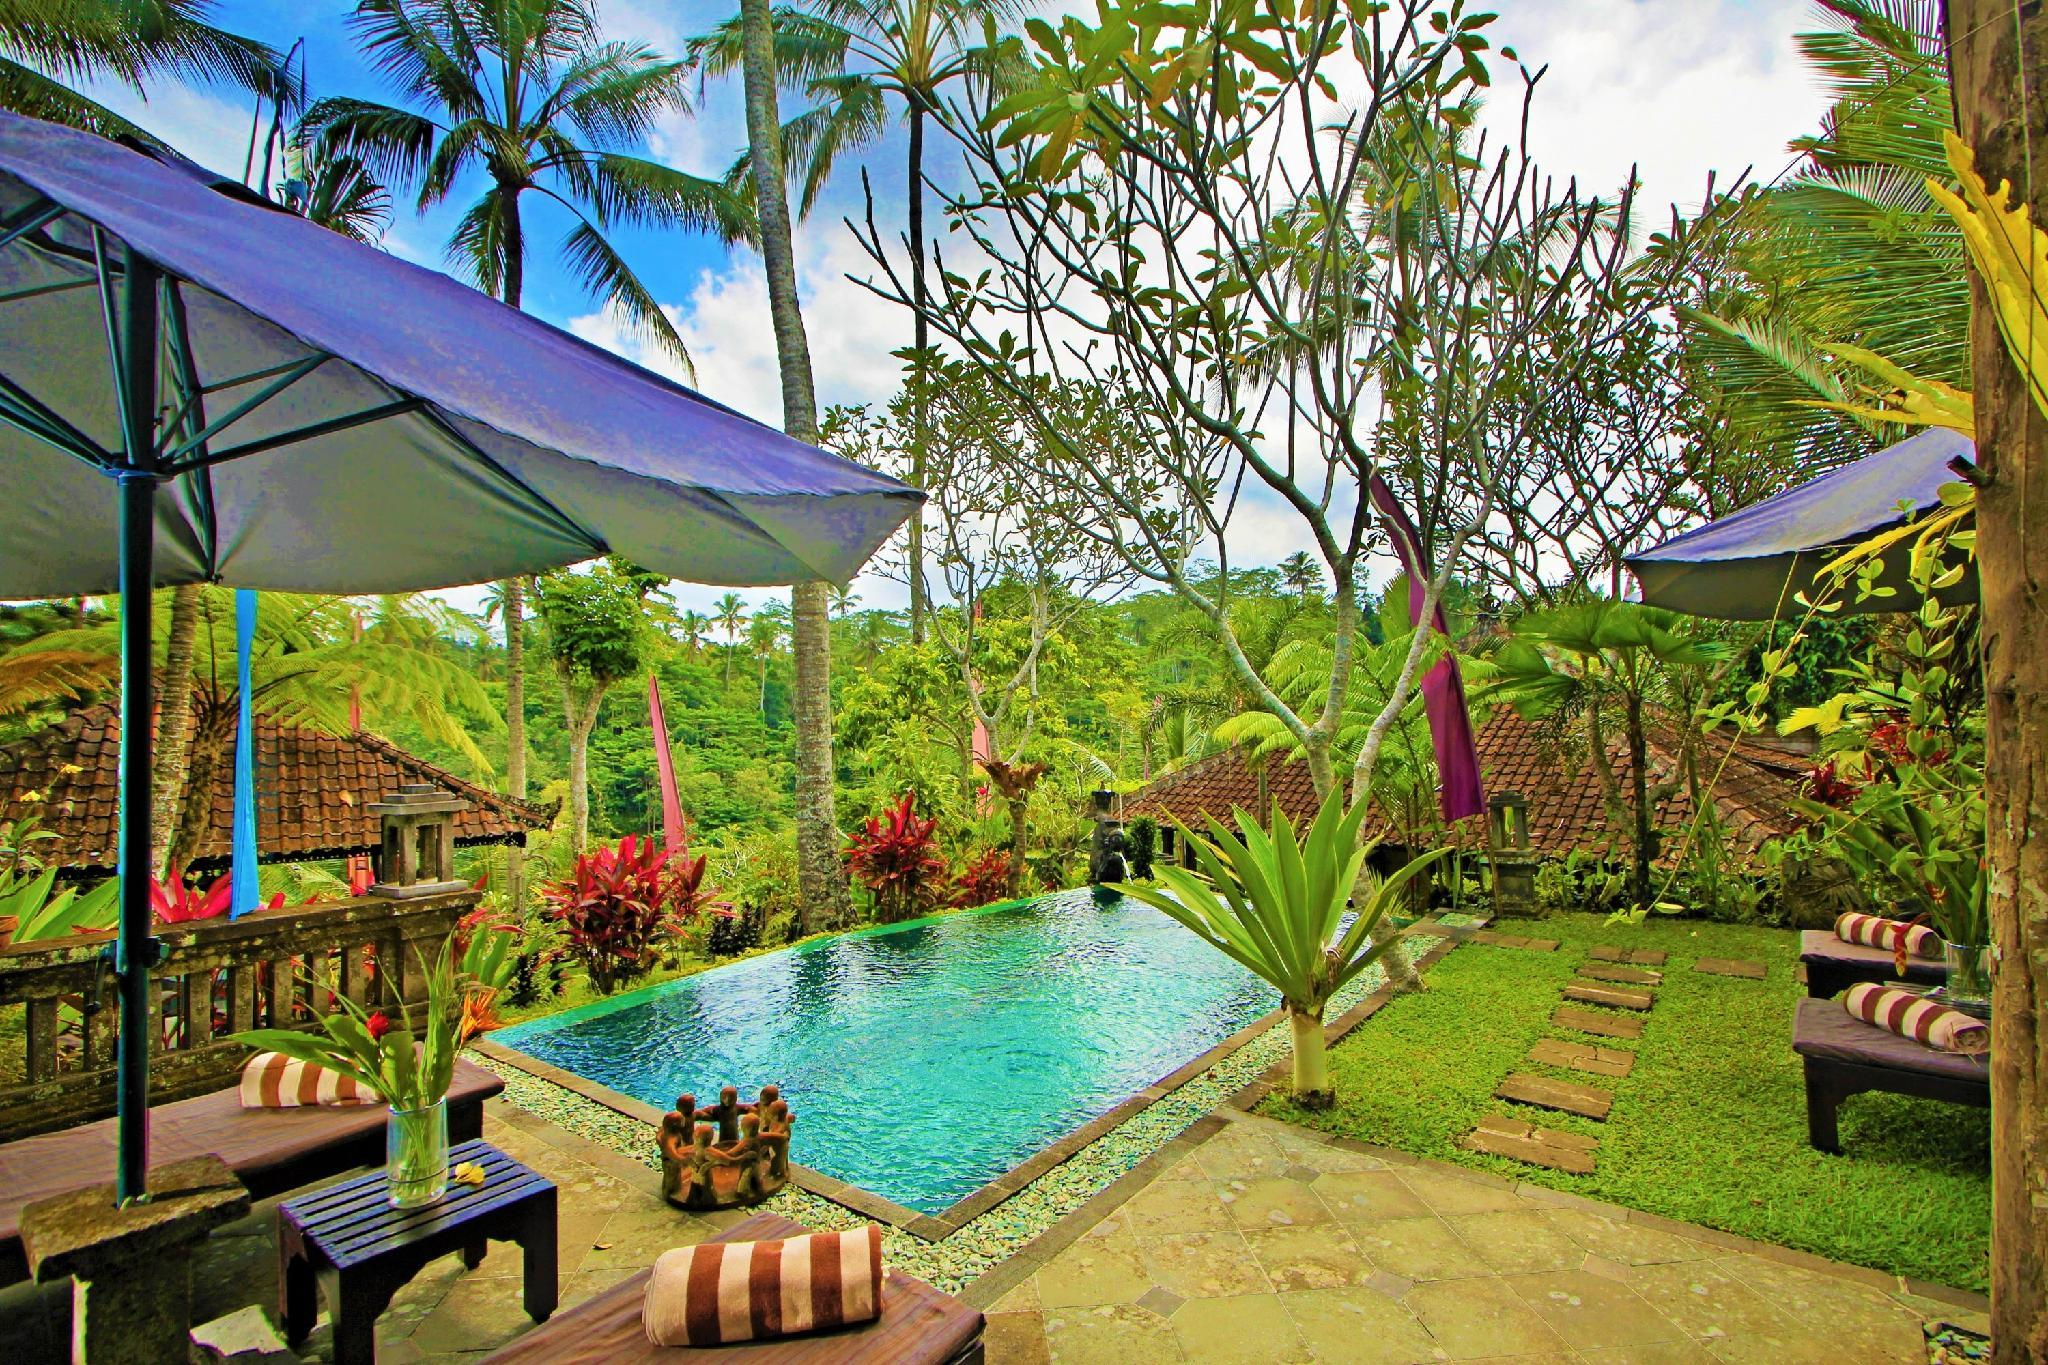 #1 UBUD Private Pool Villa 2 BR with Valley View